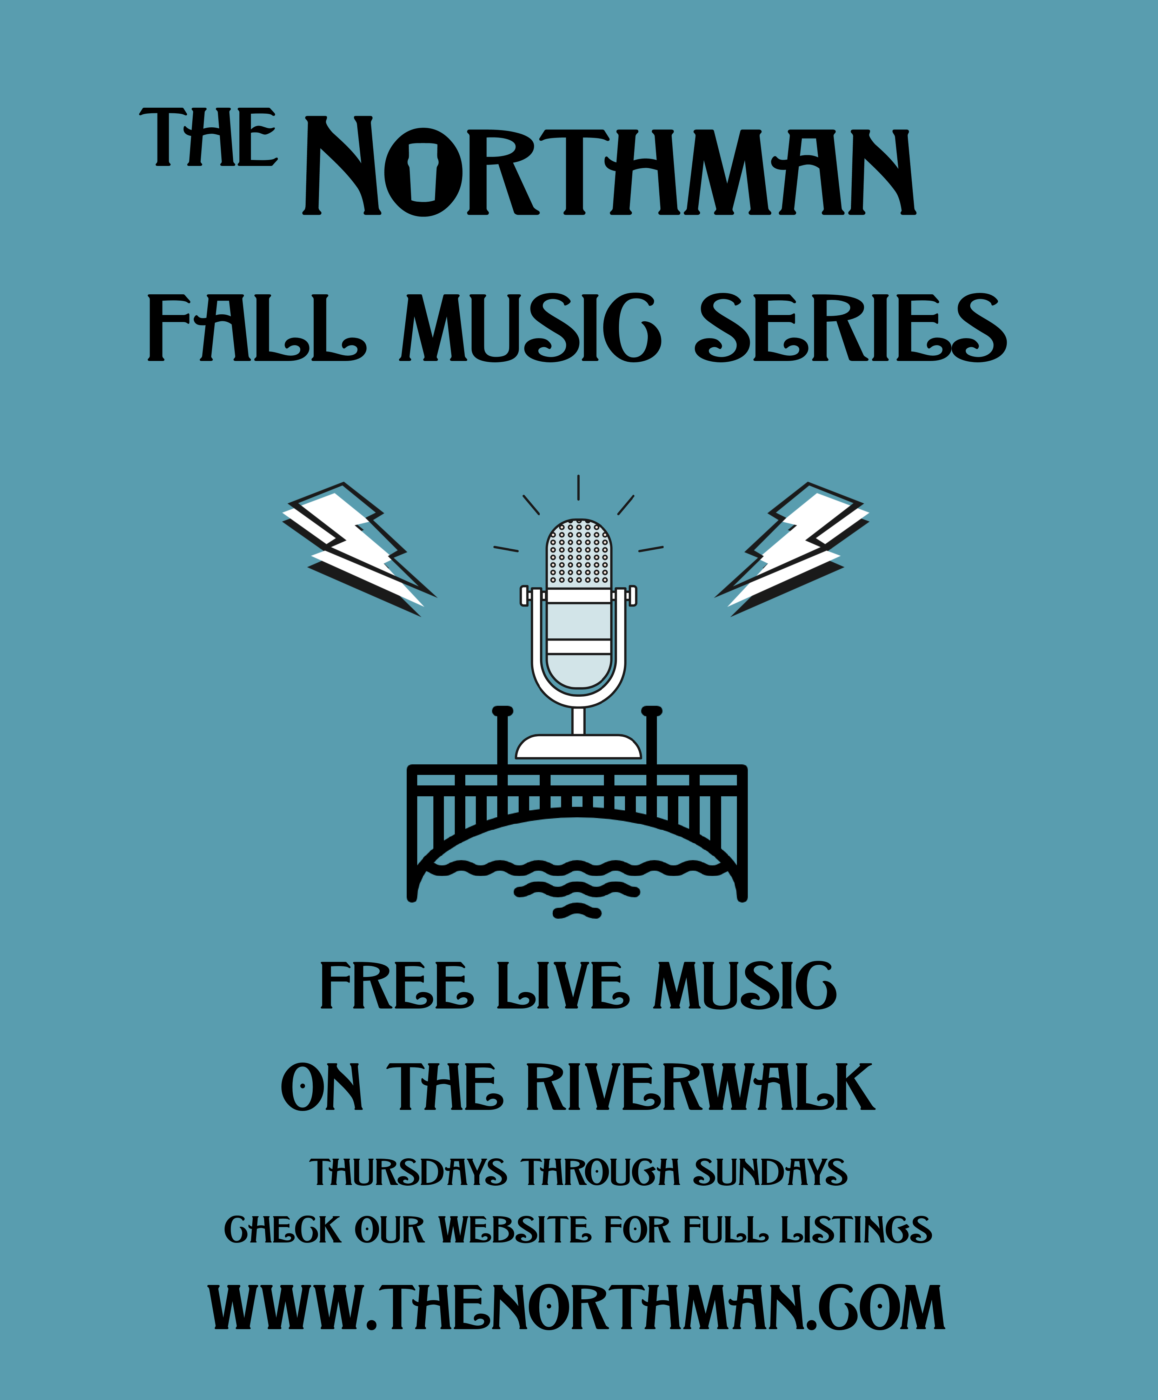 Fall Music Series Poster